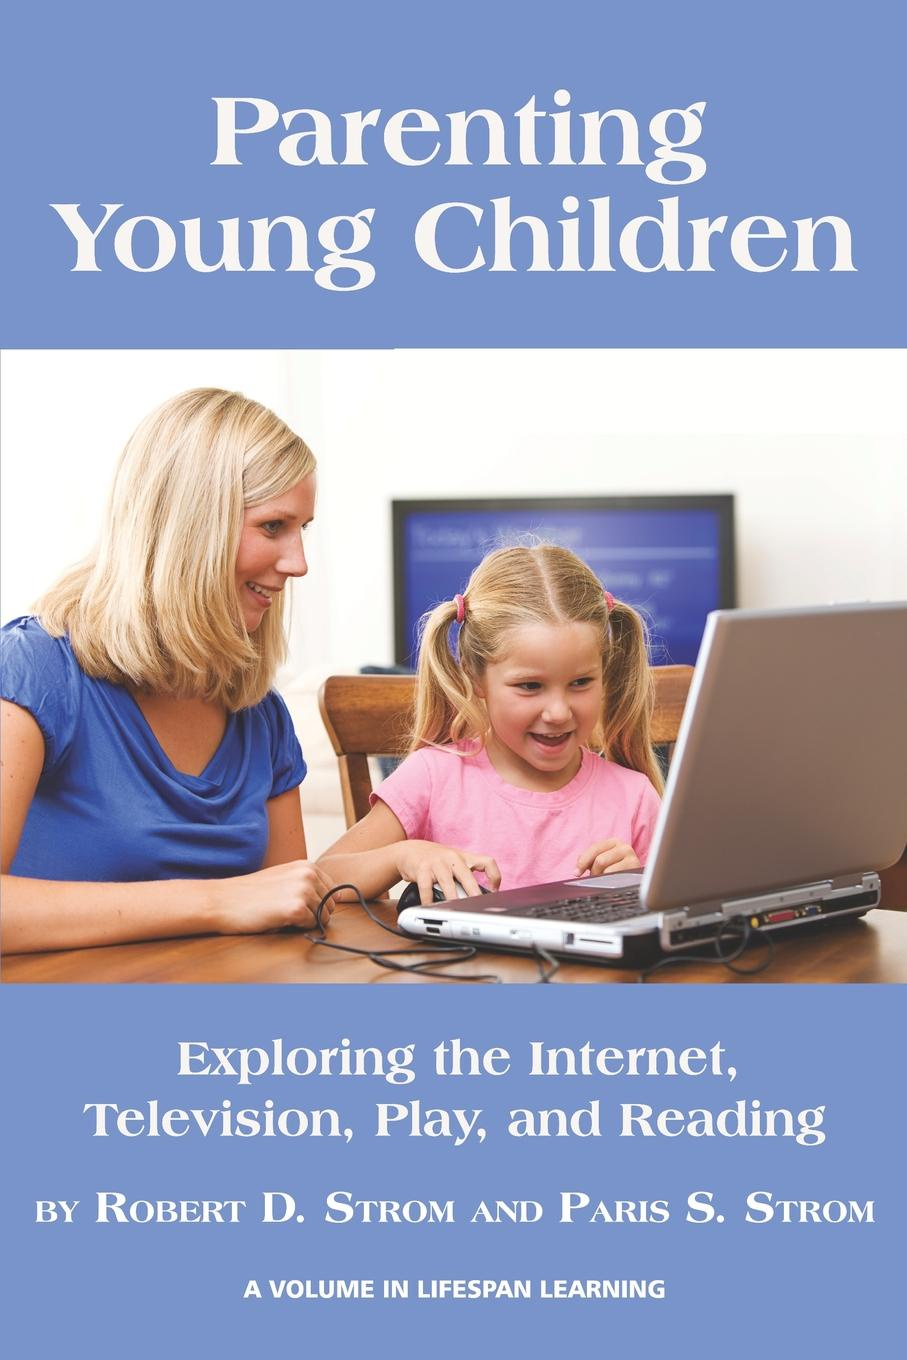 Фото - Robert D. Strom, Paris S. Strom Parenting Young Children. Exploring the Internet, Television, Play, and Reading paris s strom robert d strom thinking in childhood and adolescence